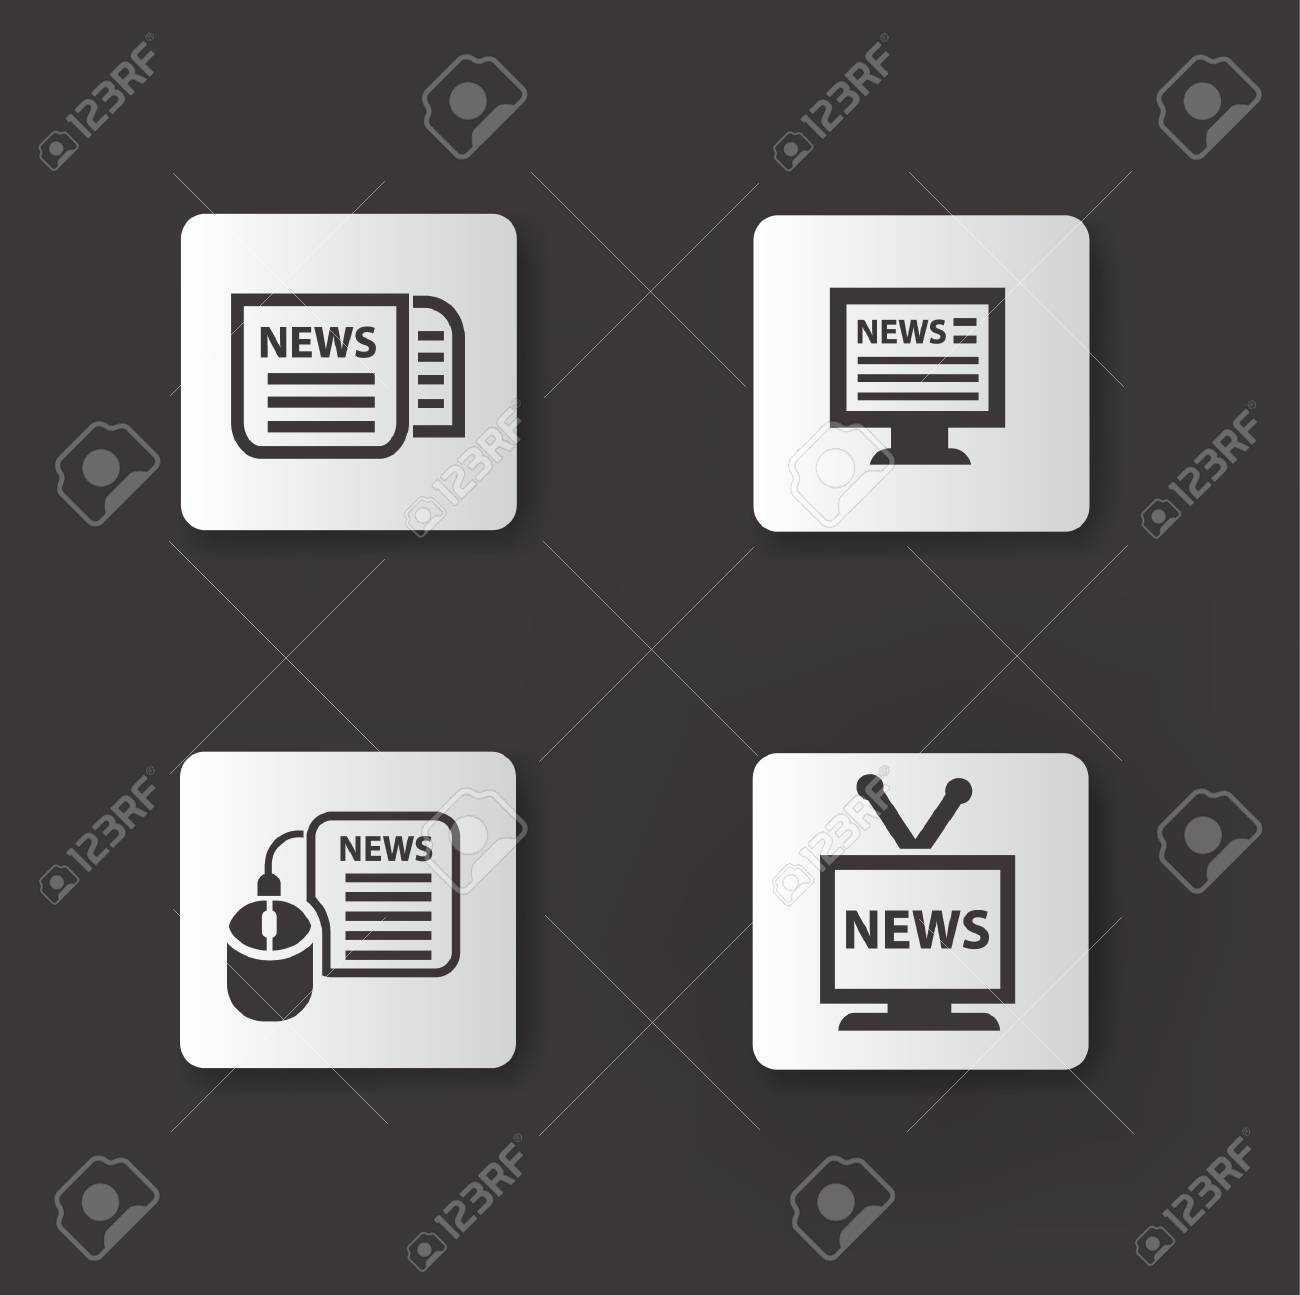 News icons Stock Vector - 19771201